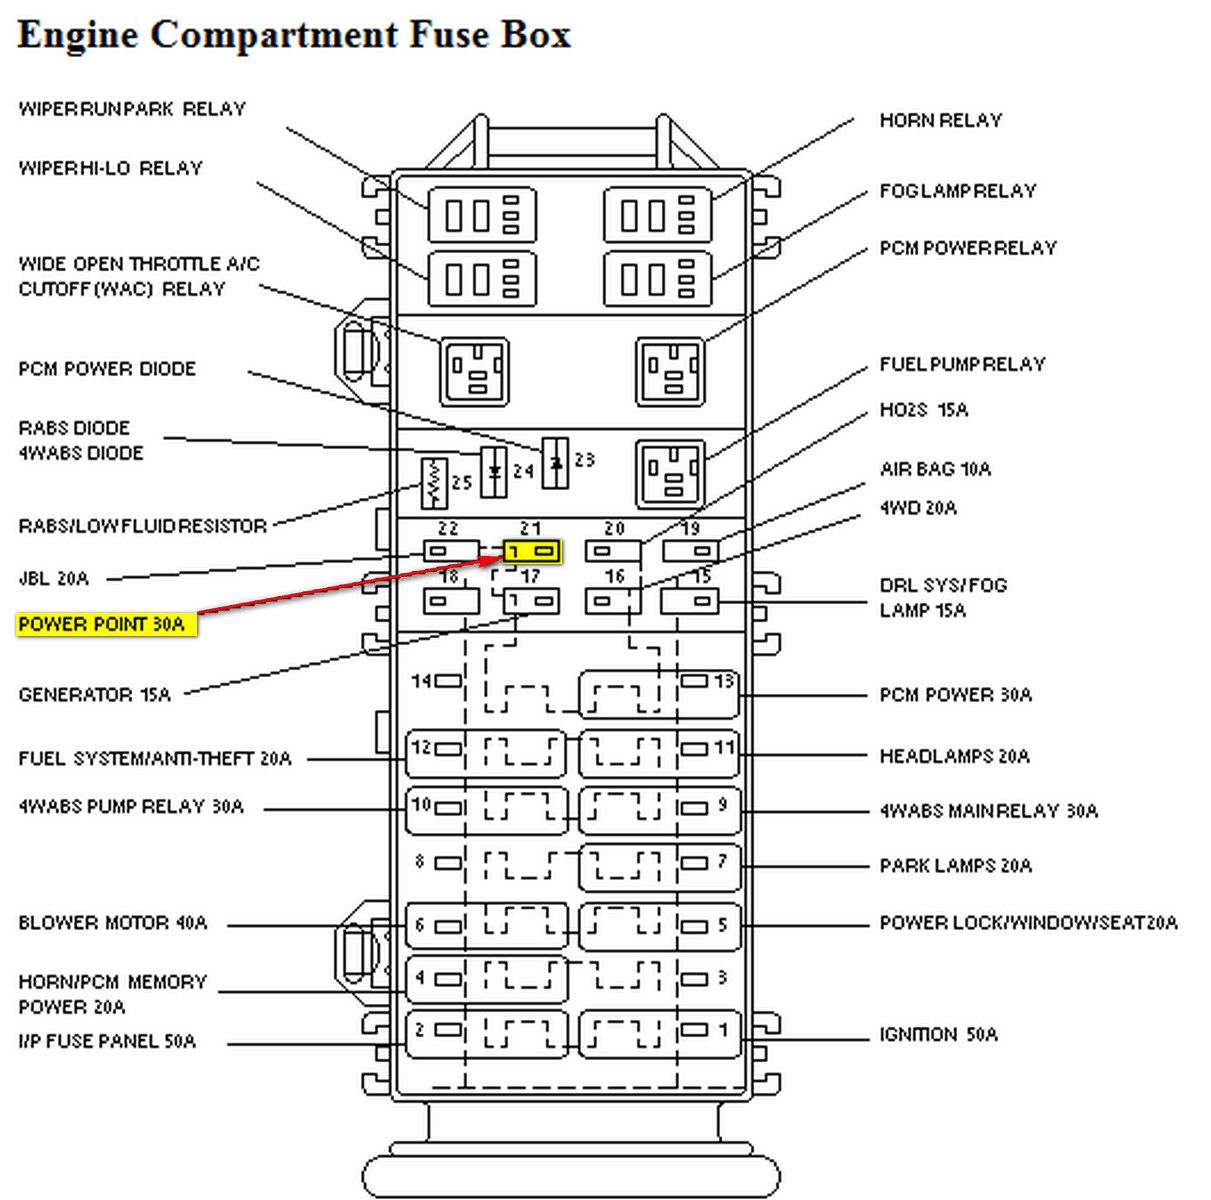 hight resolution of 95 ford ranger fuse diagram wiring diagram note 1995 ranger fuse panel diagram